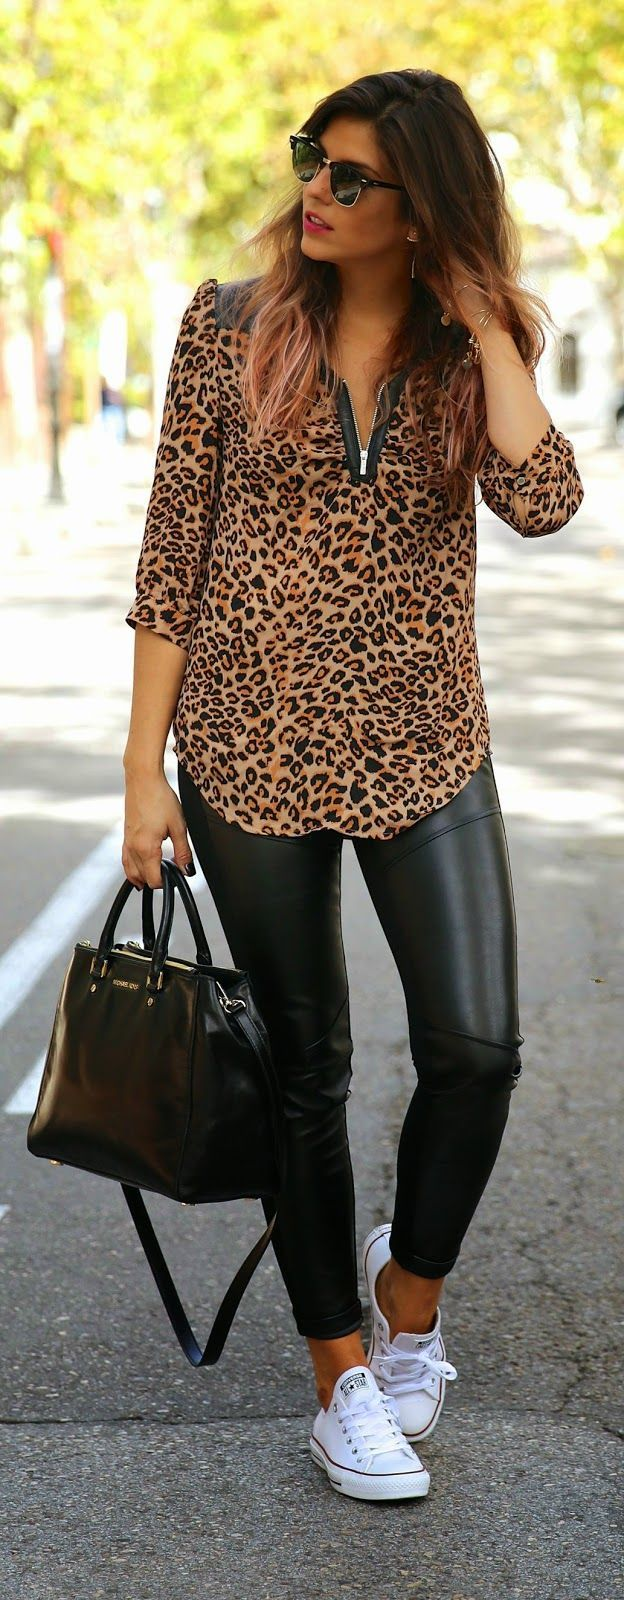 @roressclothes closet ideas #women fashion outfit #clothing style apparel Leopard Top and Black Leggings